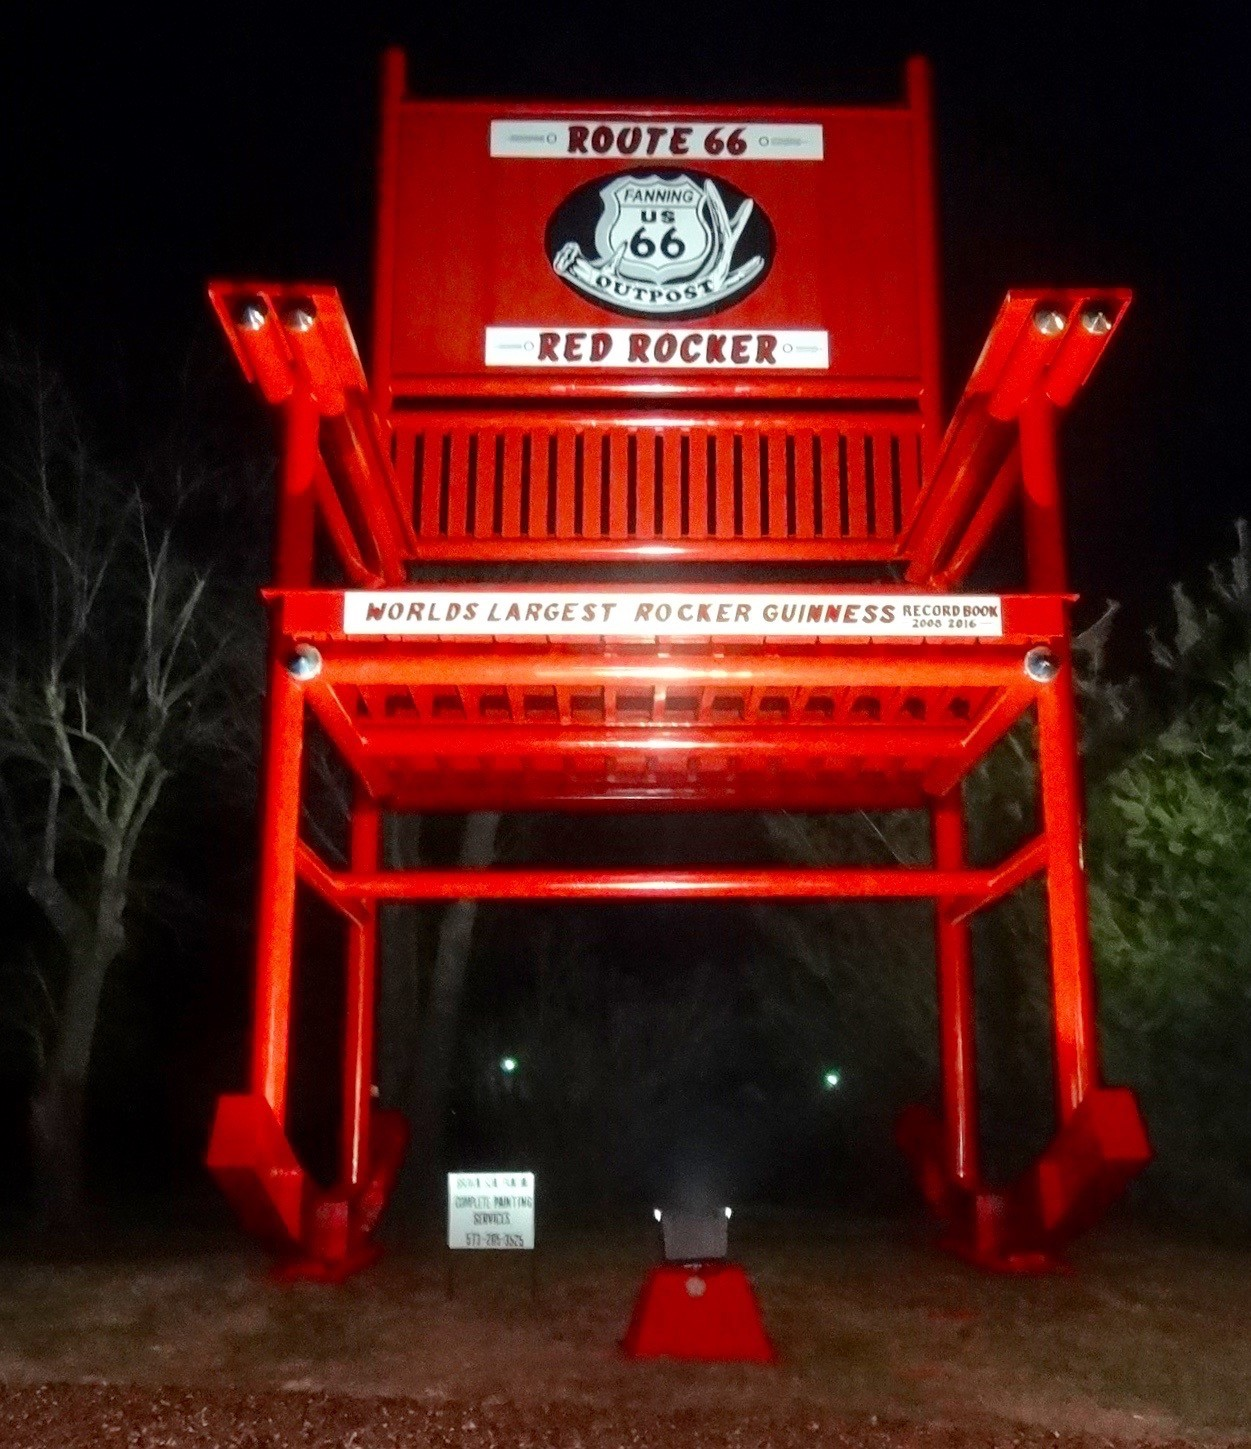 Sensational From Worlds Largest To The Route 66 Red Rocker Cuba Mo Alphanode Cool Chair Designs And Ideas Alphanodeonline